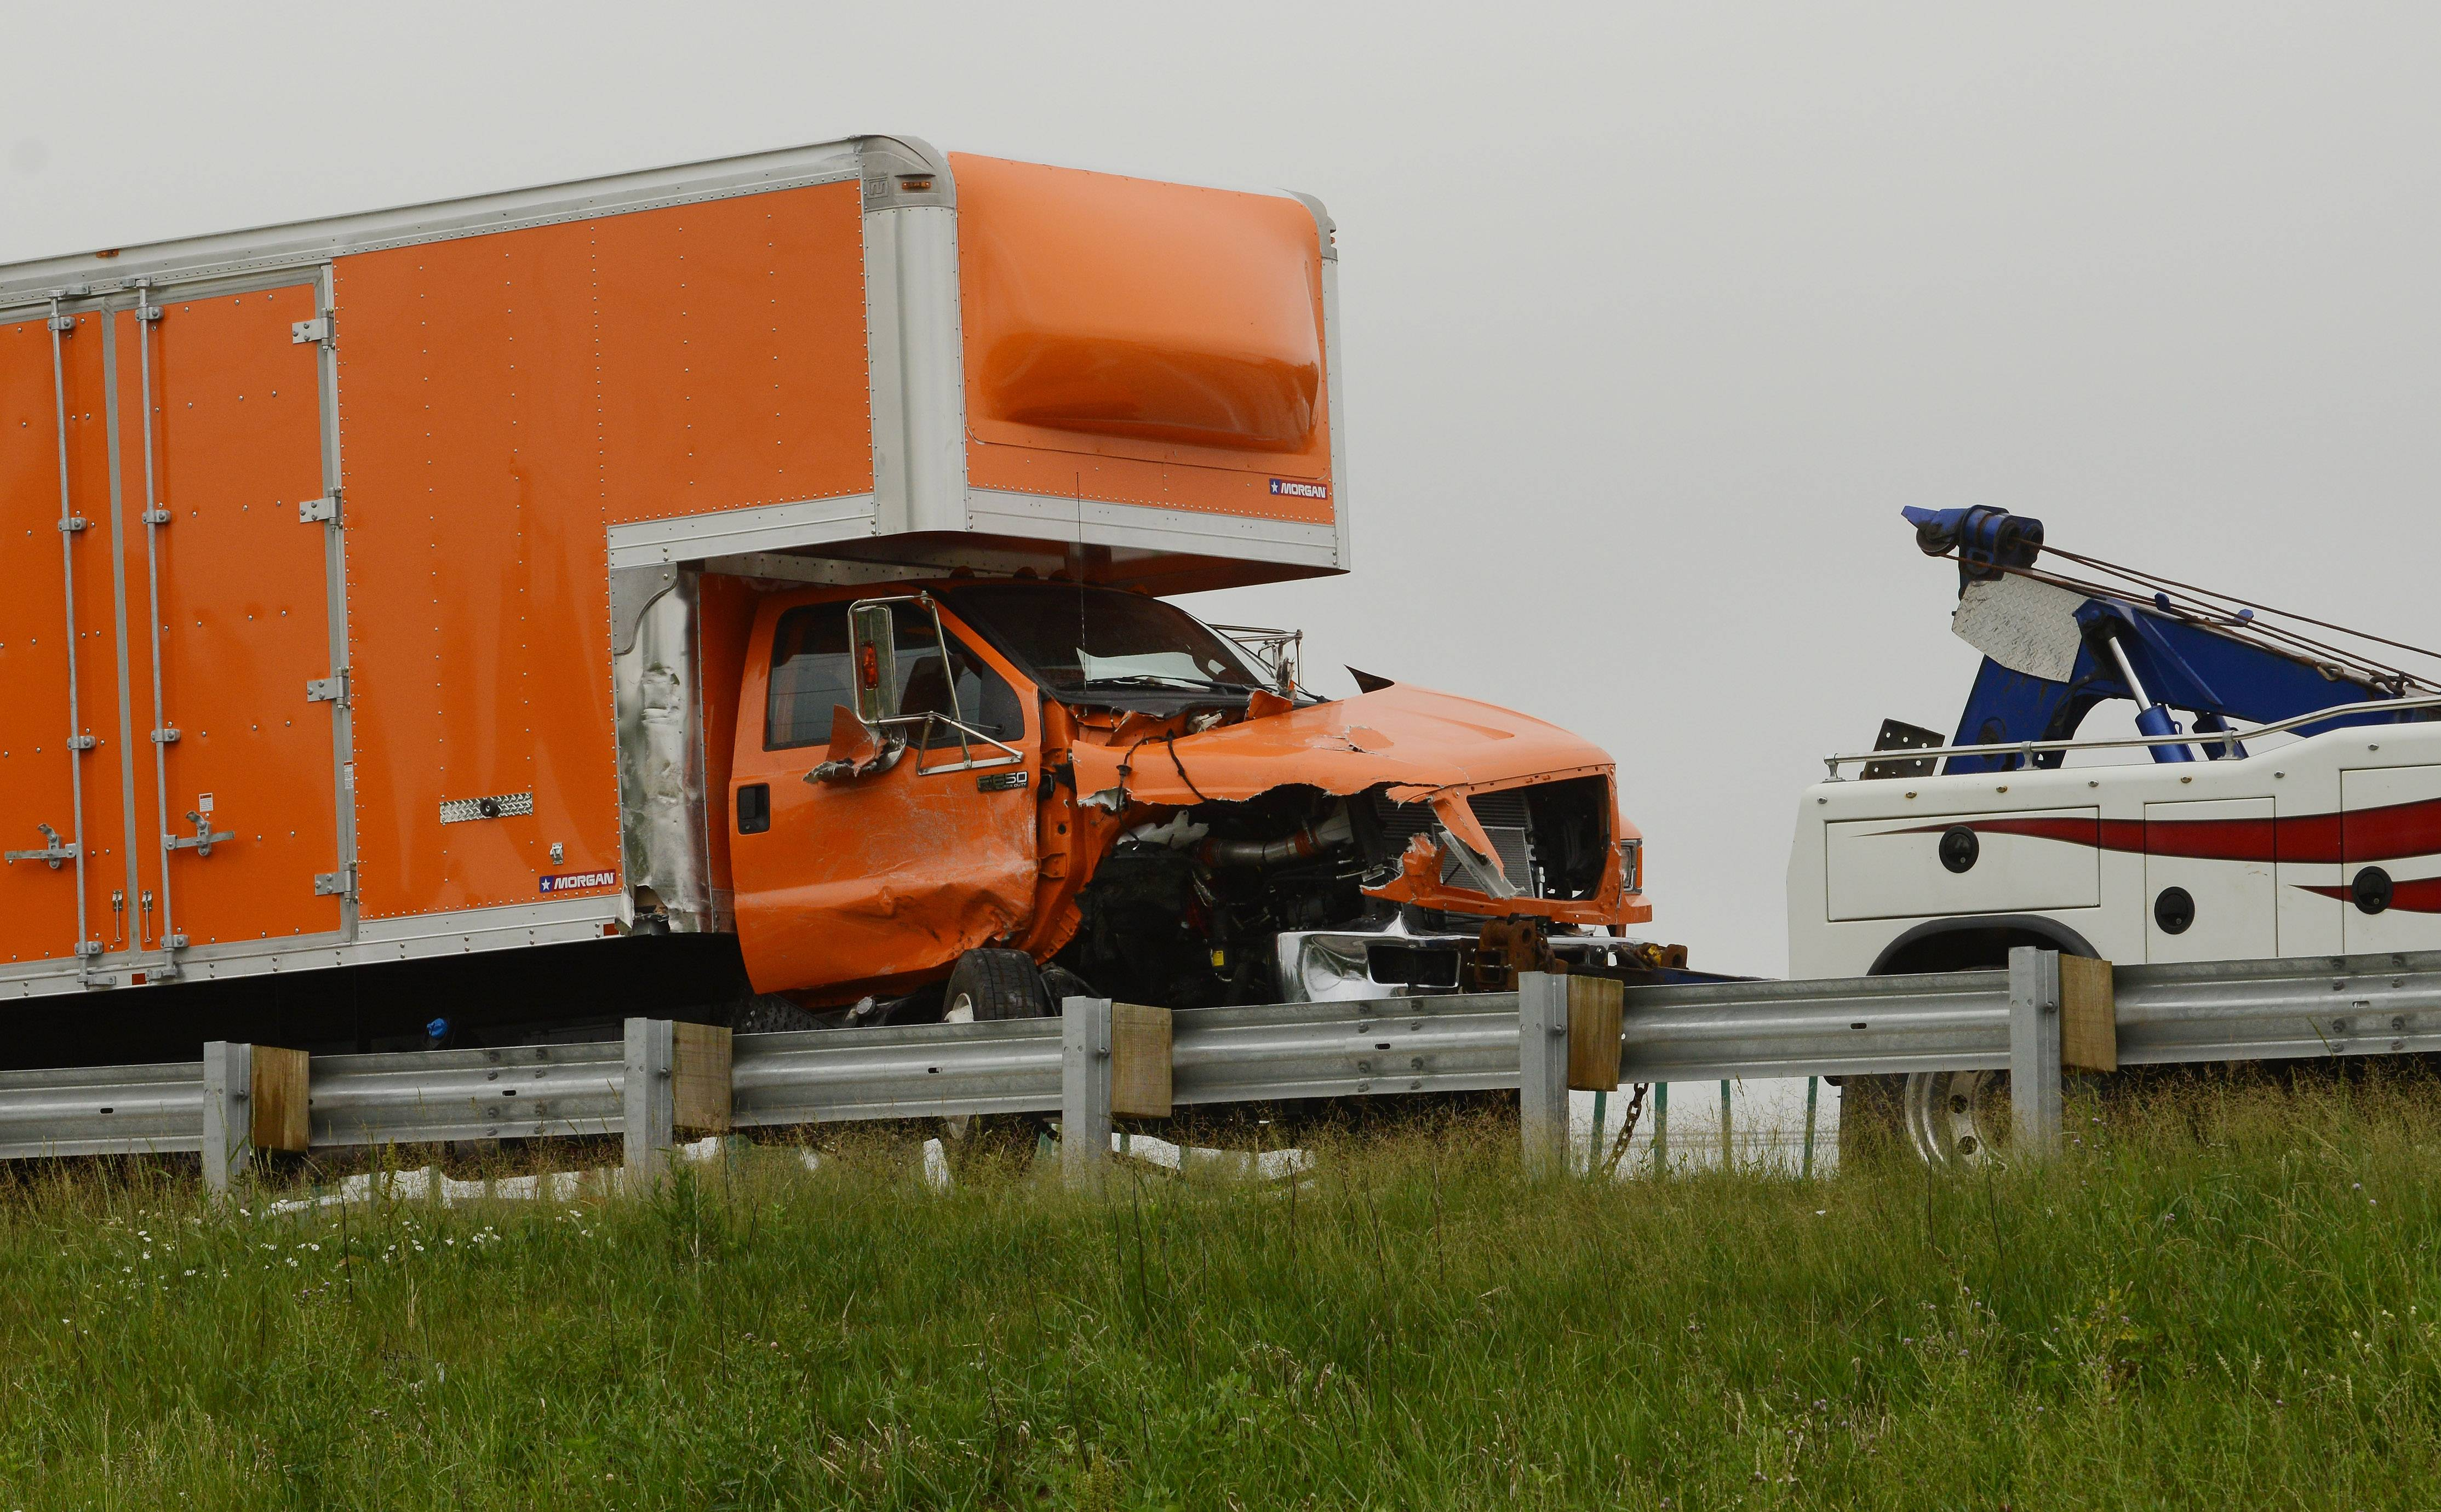 Two semitrailers, a box truck and a sport utility vehicle were involved in a crash Thursday on Interstate 90 in Elgin, the state police said. The crash closed the tollway for about two hours.